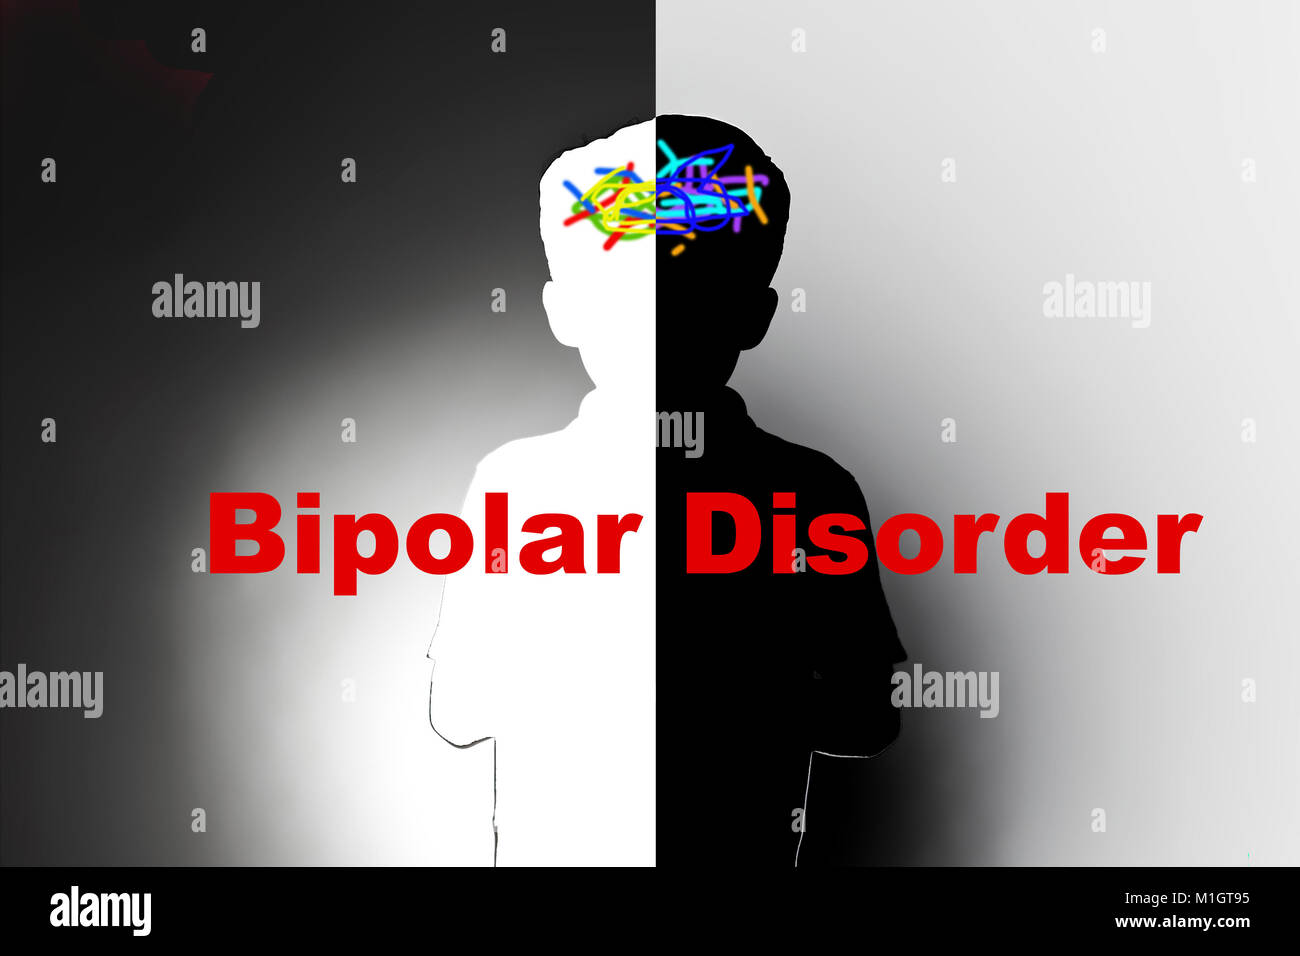 childhood bipolar disorder, safeguarding children and social care, mental illness - Stock Image